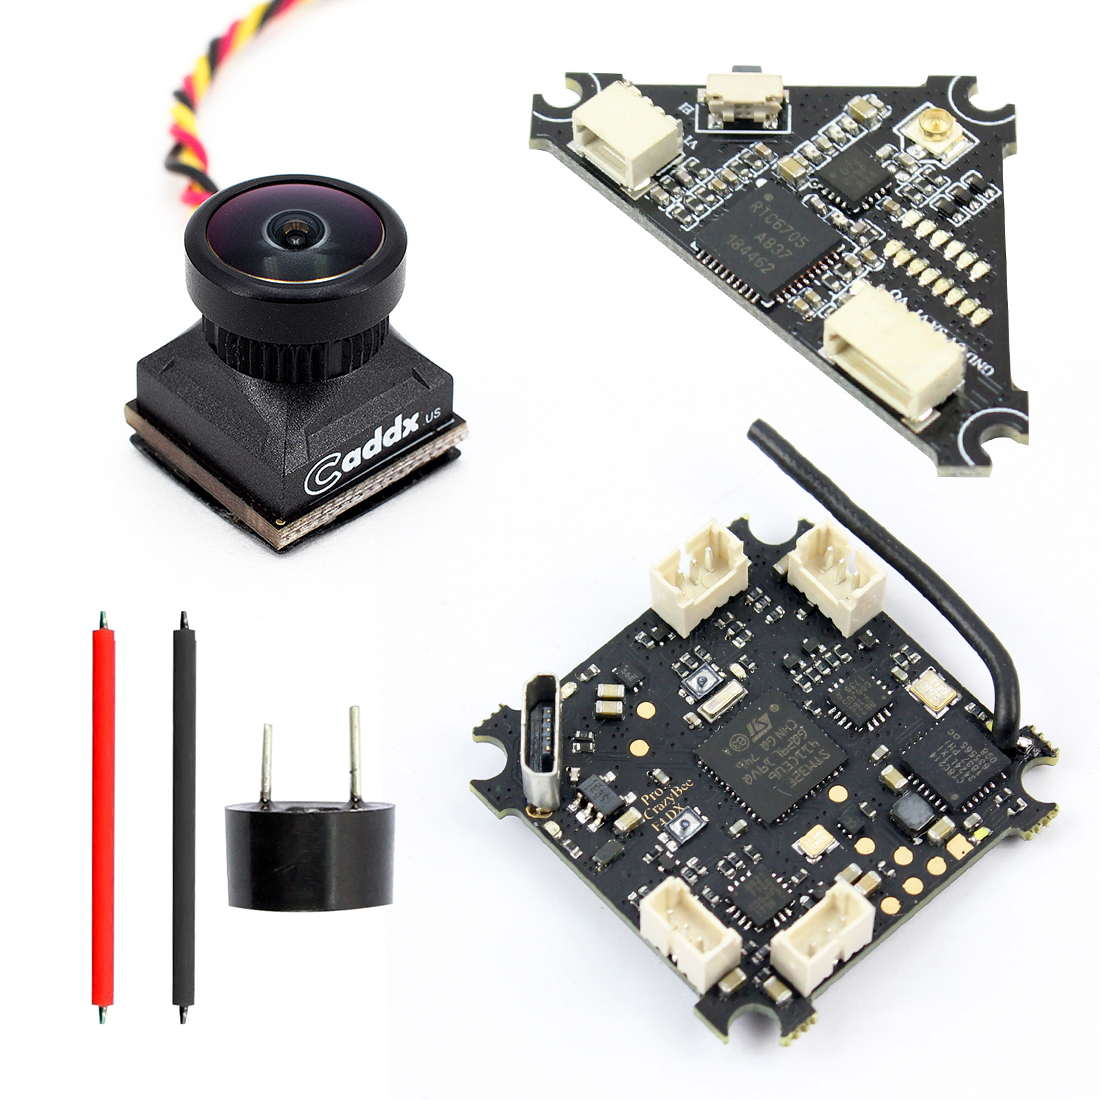 Welding Combo for Mobula7 Upgrade Crazybee F4 Pro Flight Controller +  1200TVL FPV Camera & Switchable VTX + New Canopy V2